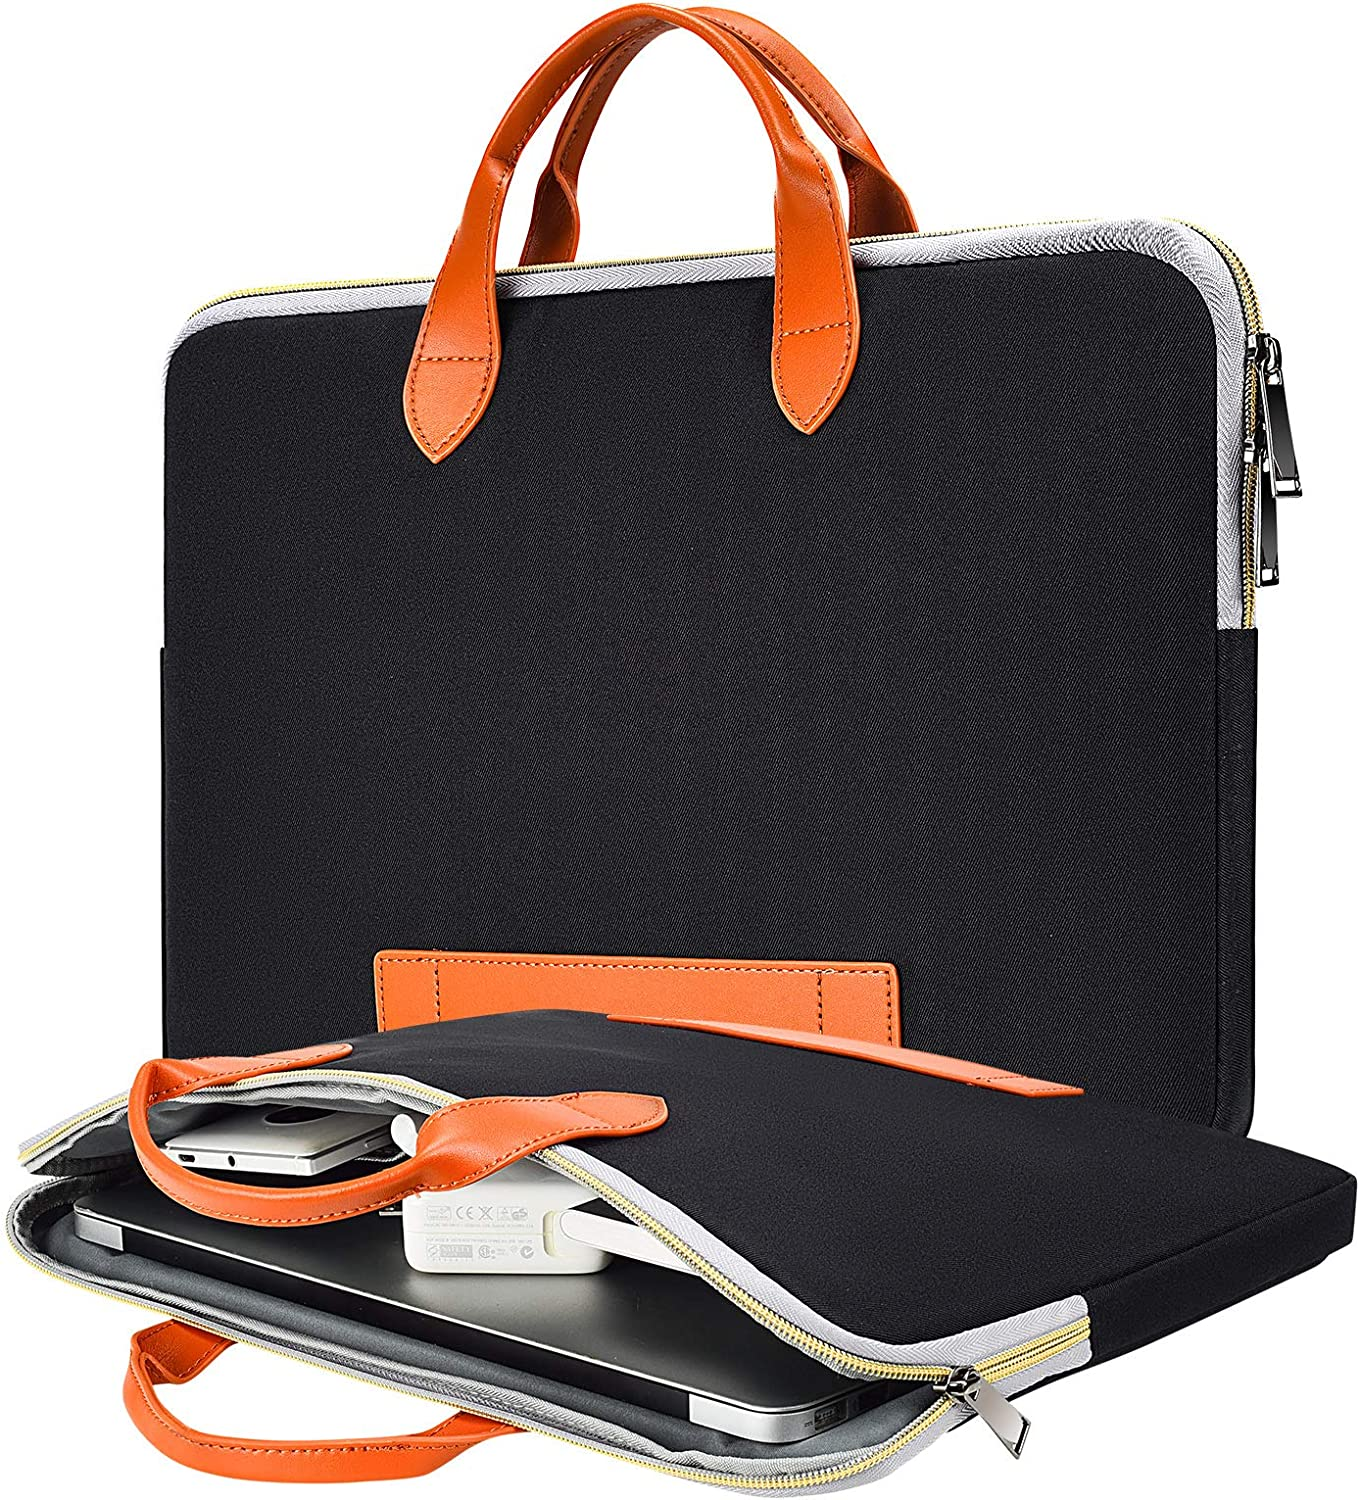 13.5-15 Inch Waterproof Spring new work Laptop Case San Francisco Mall Men Bag Women with fo Handle